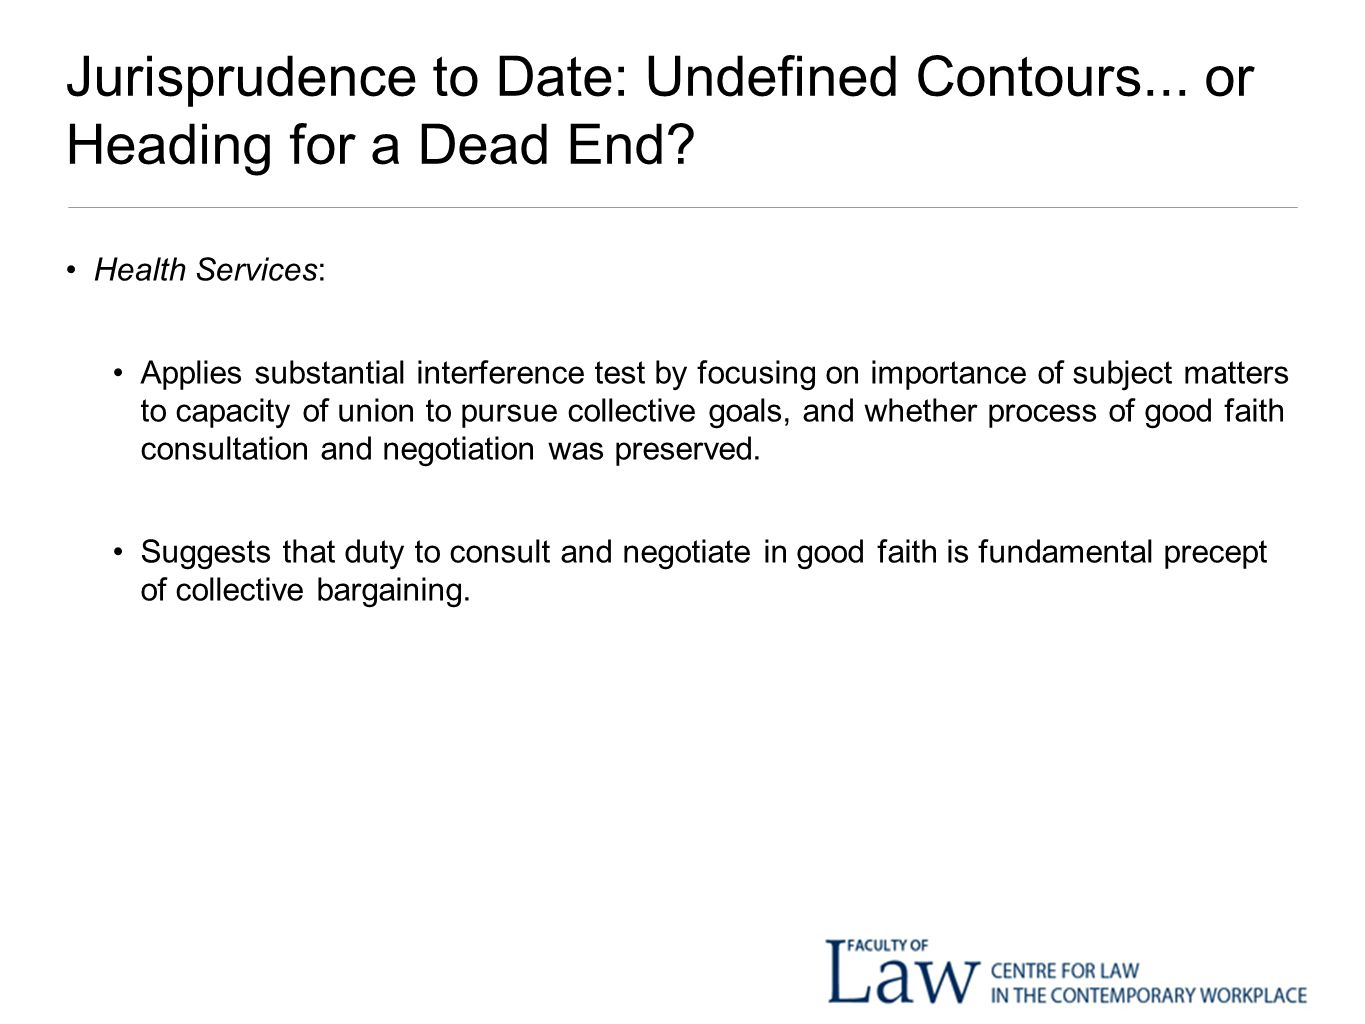 Jurisprudence to Date: Undefined Contours...or Heading for a Dead End.